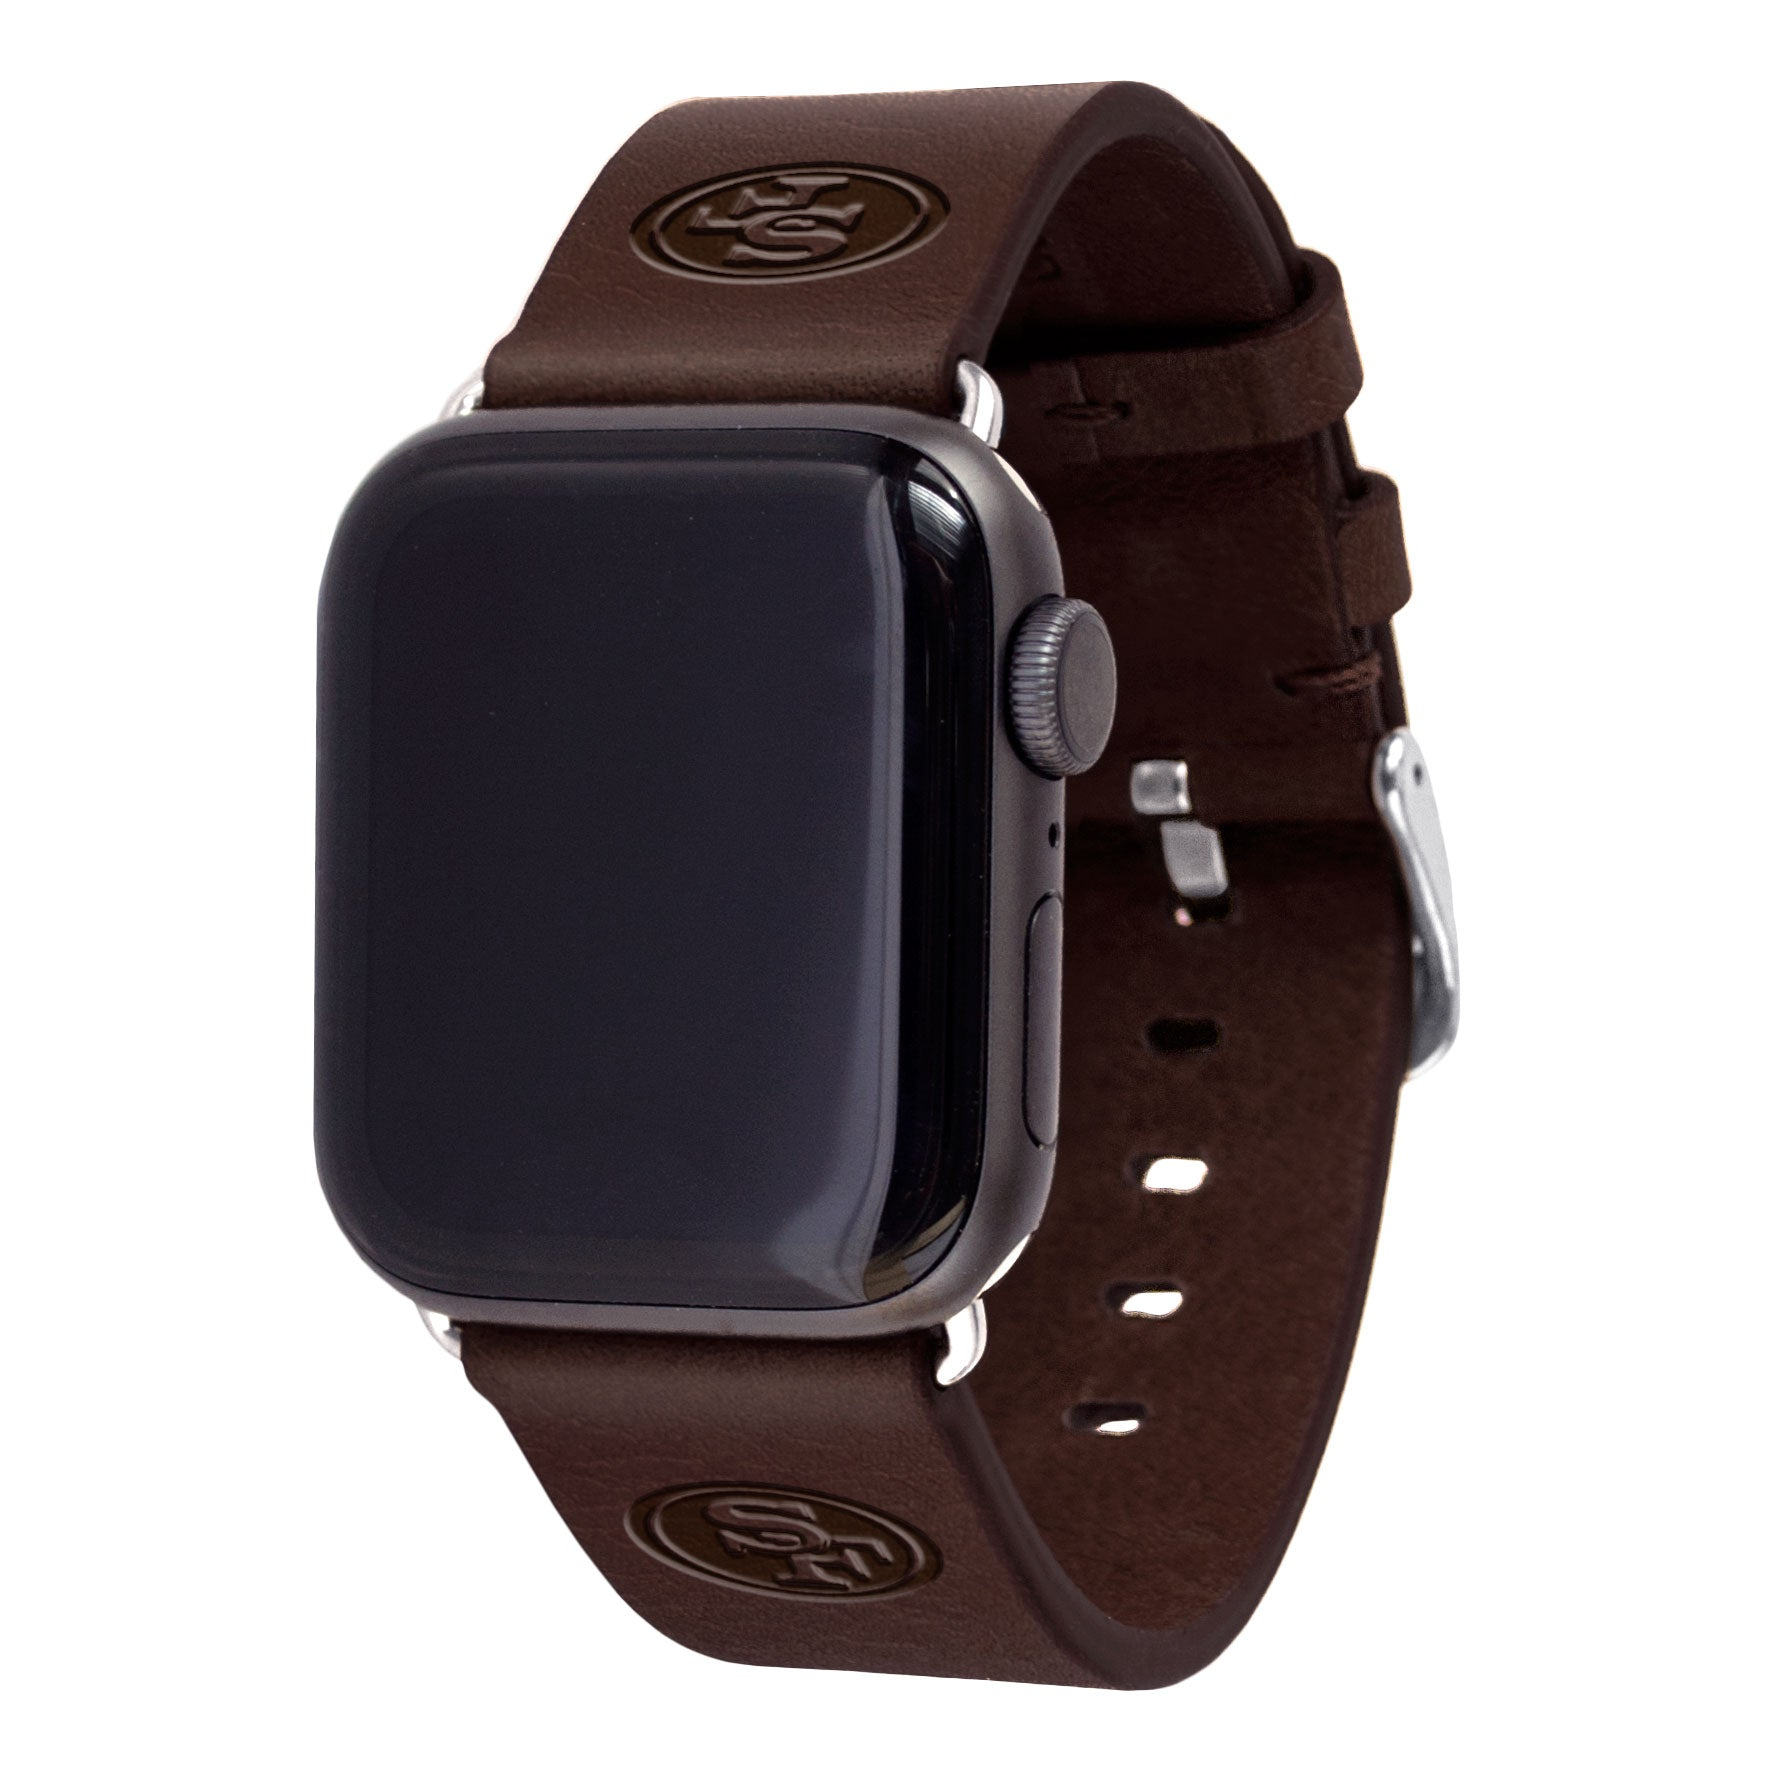 San Francisco 49ers Leather Apple Watch Band-AffinityBands